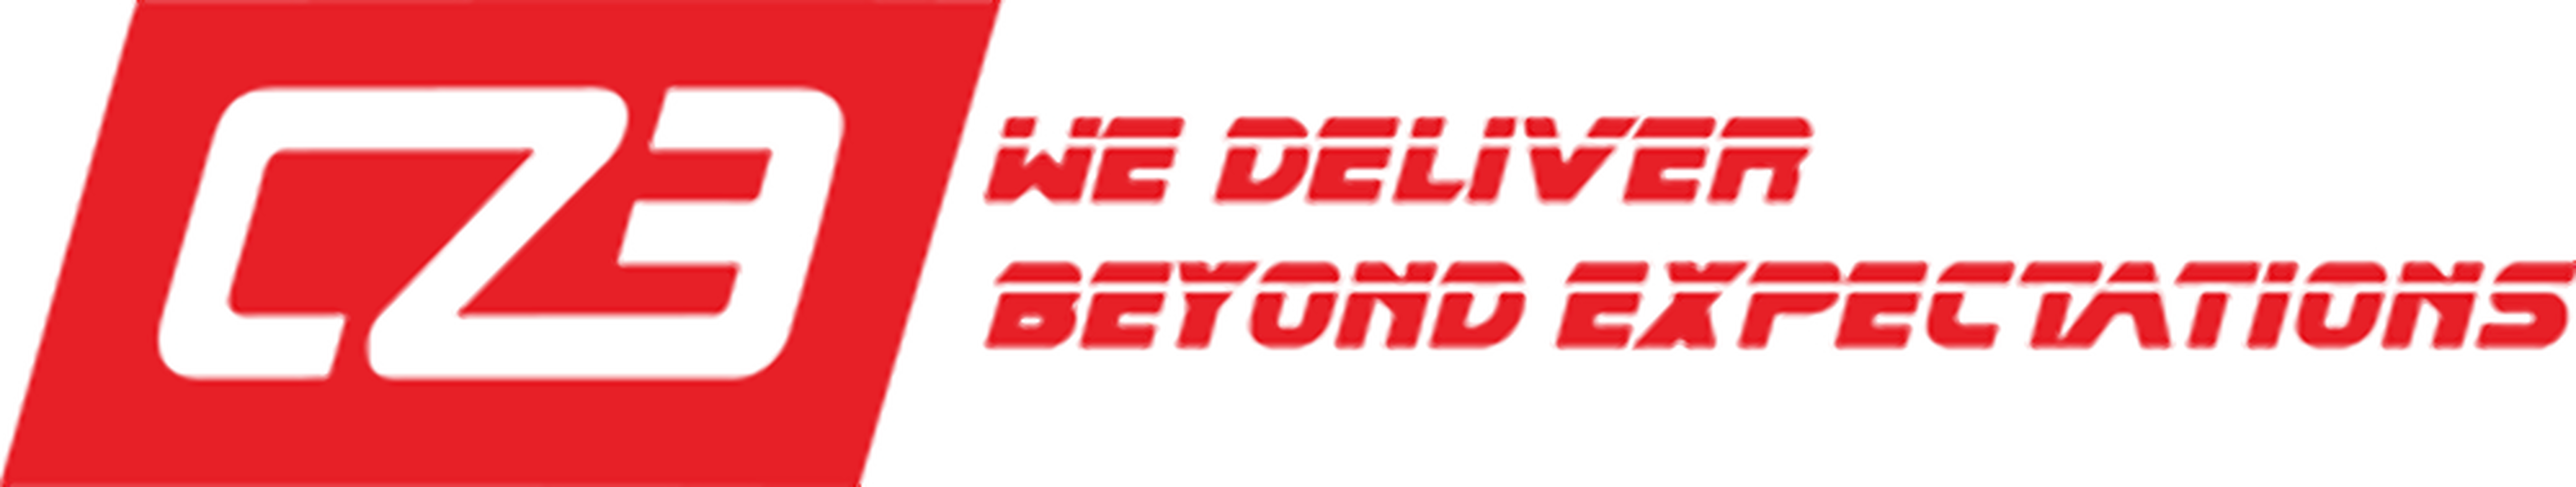 we deliver beyond expectations